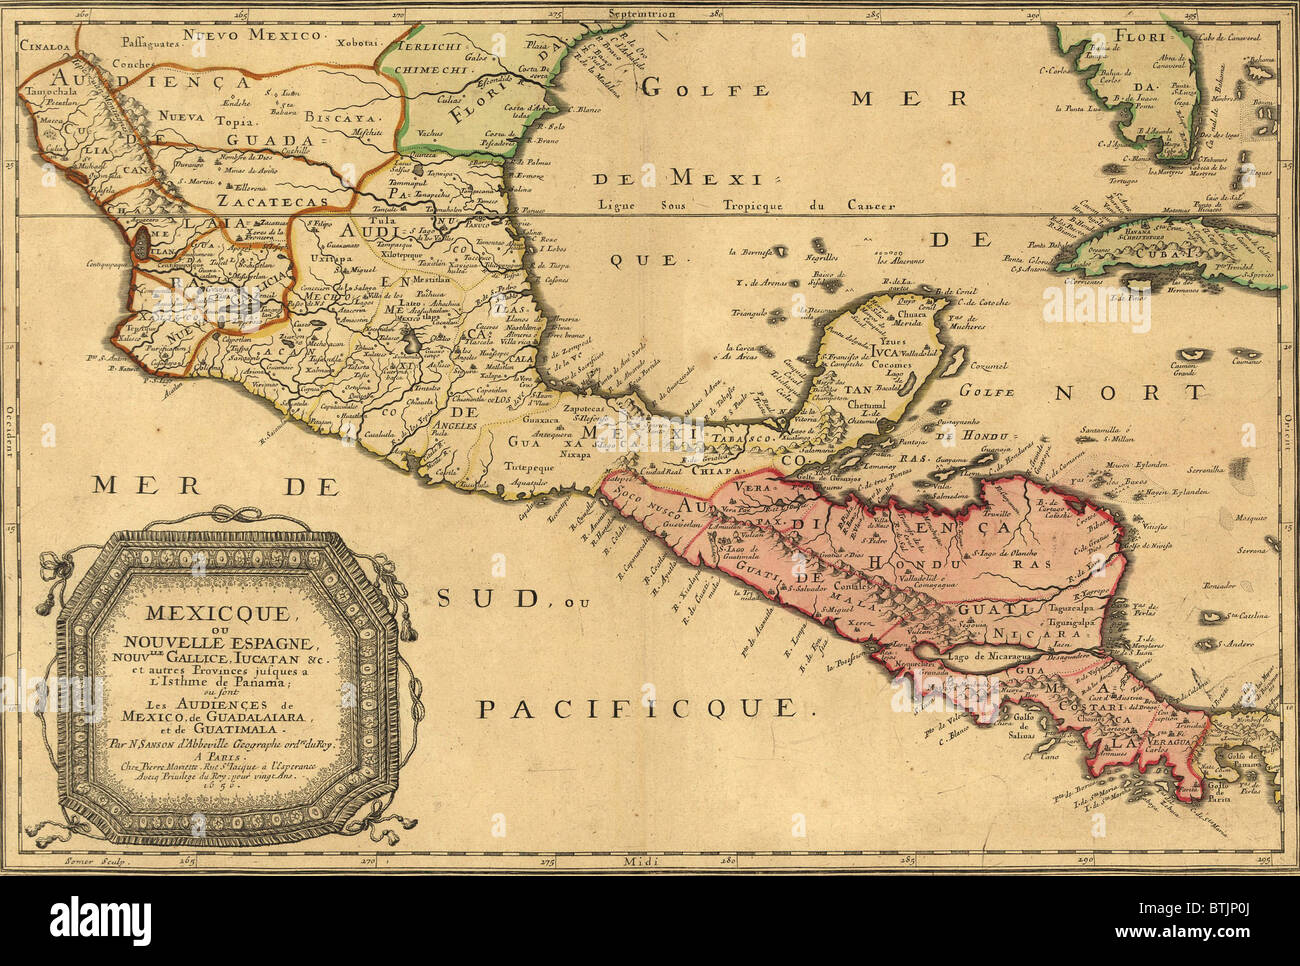 1656 map of Central America and Mexico, showing many modern place names and boundaries. Stock Photo